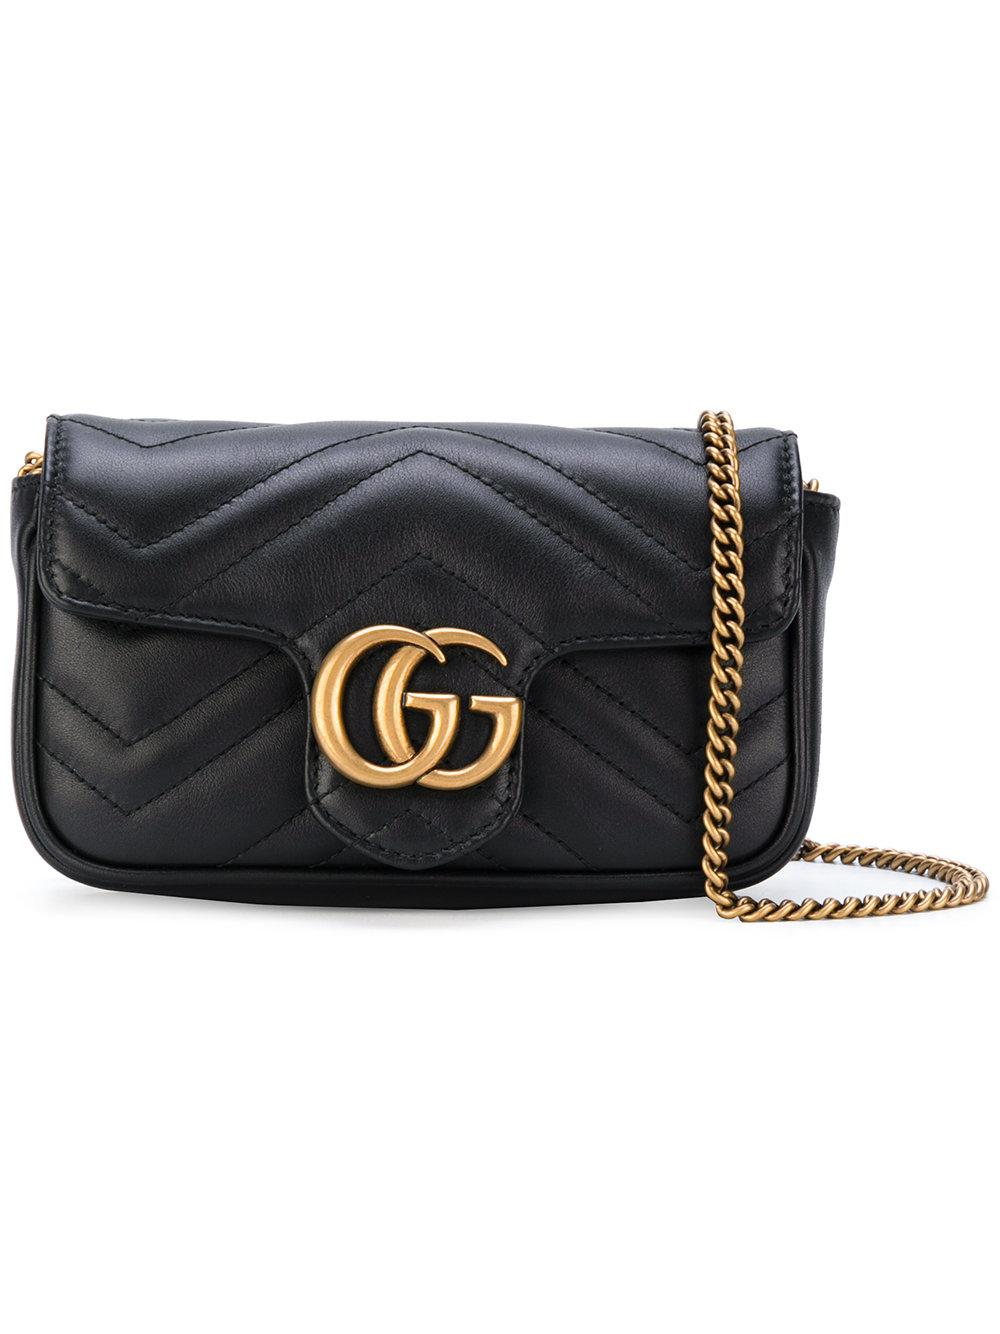 0622ca617312f4 Gucci Handbags Marmot | Stanford Center for Opportunity Policy in ...